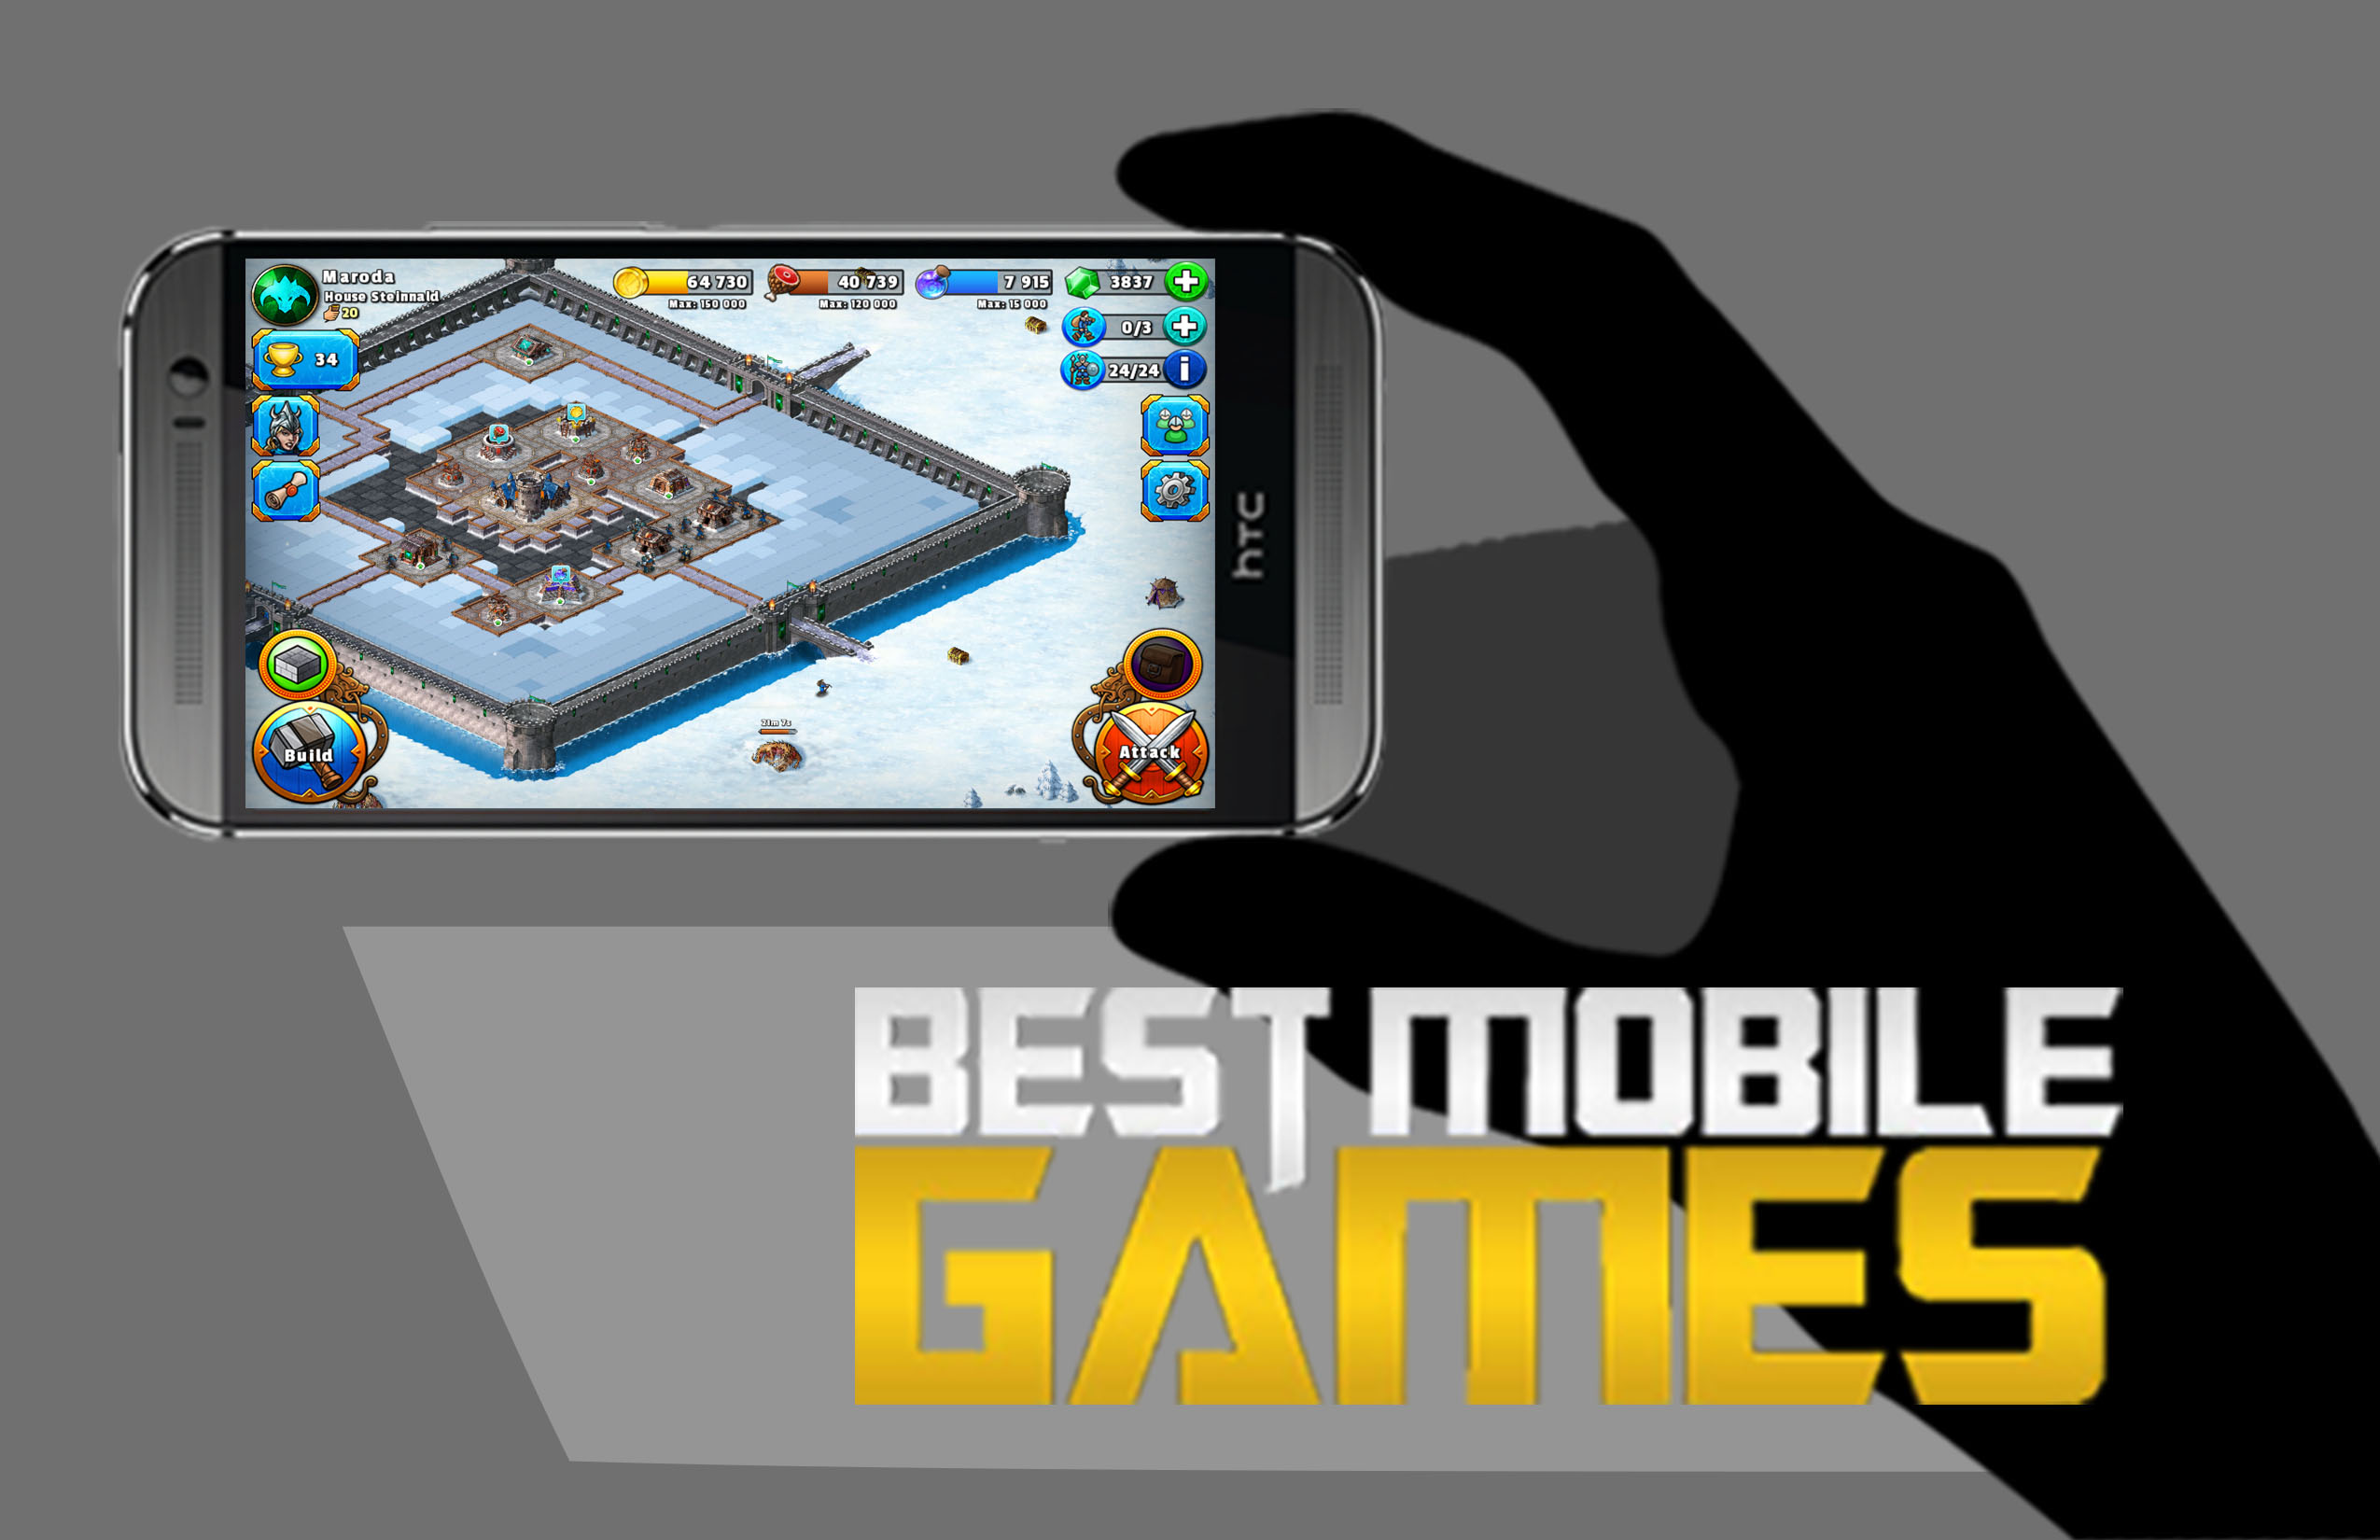 Top 10 mobile games of 2018 so far